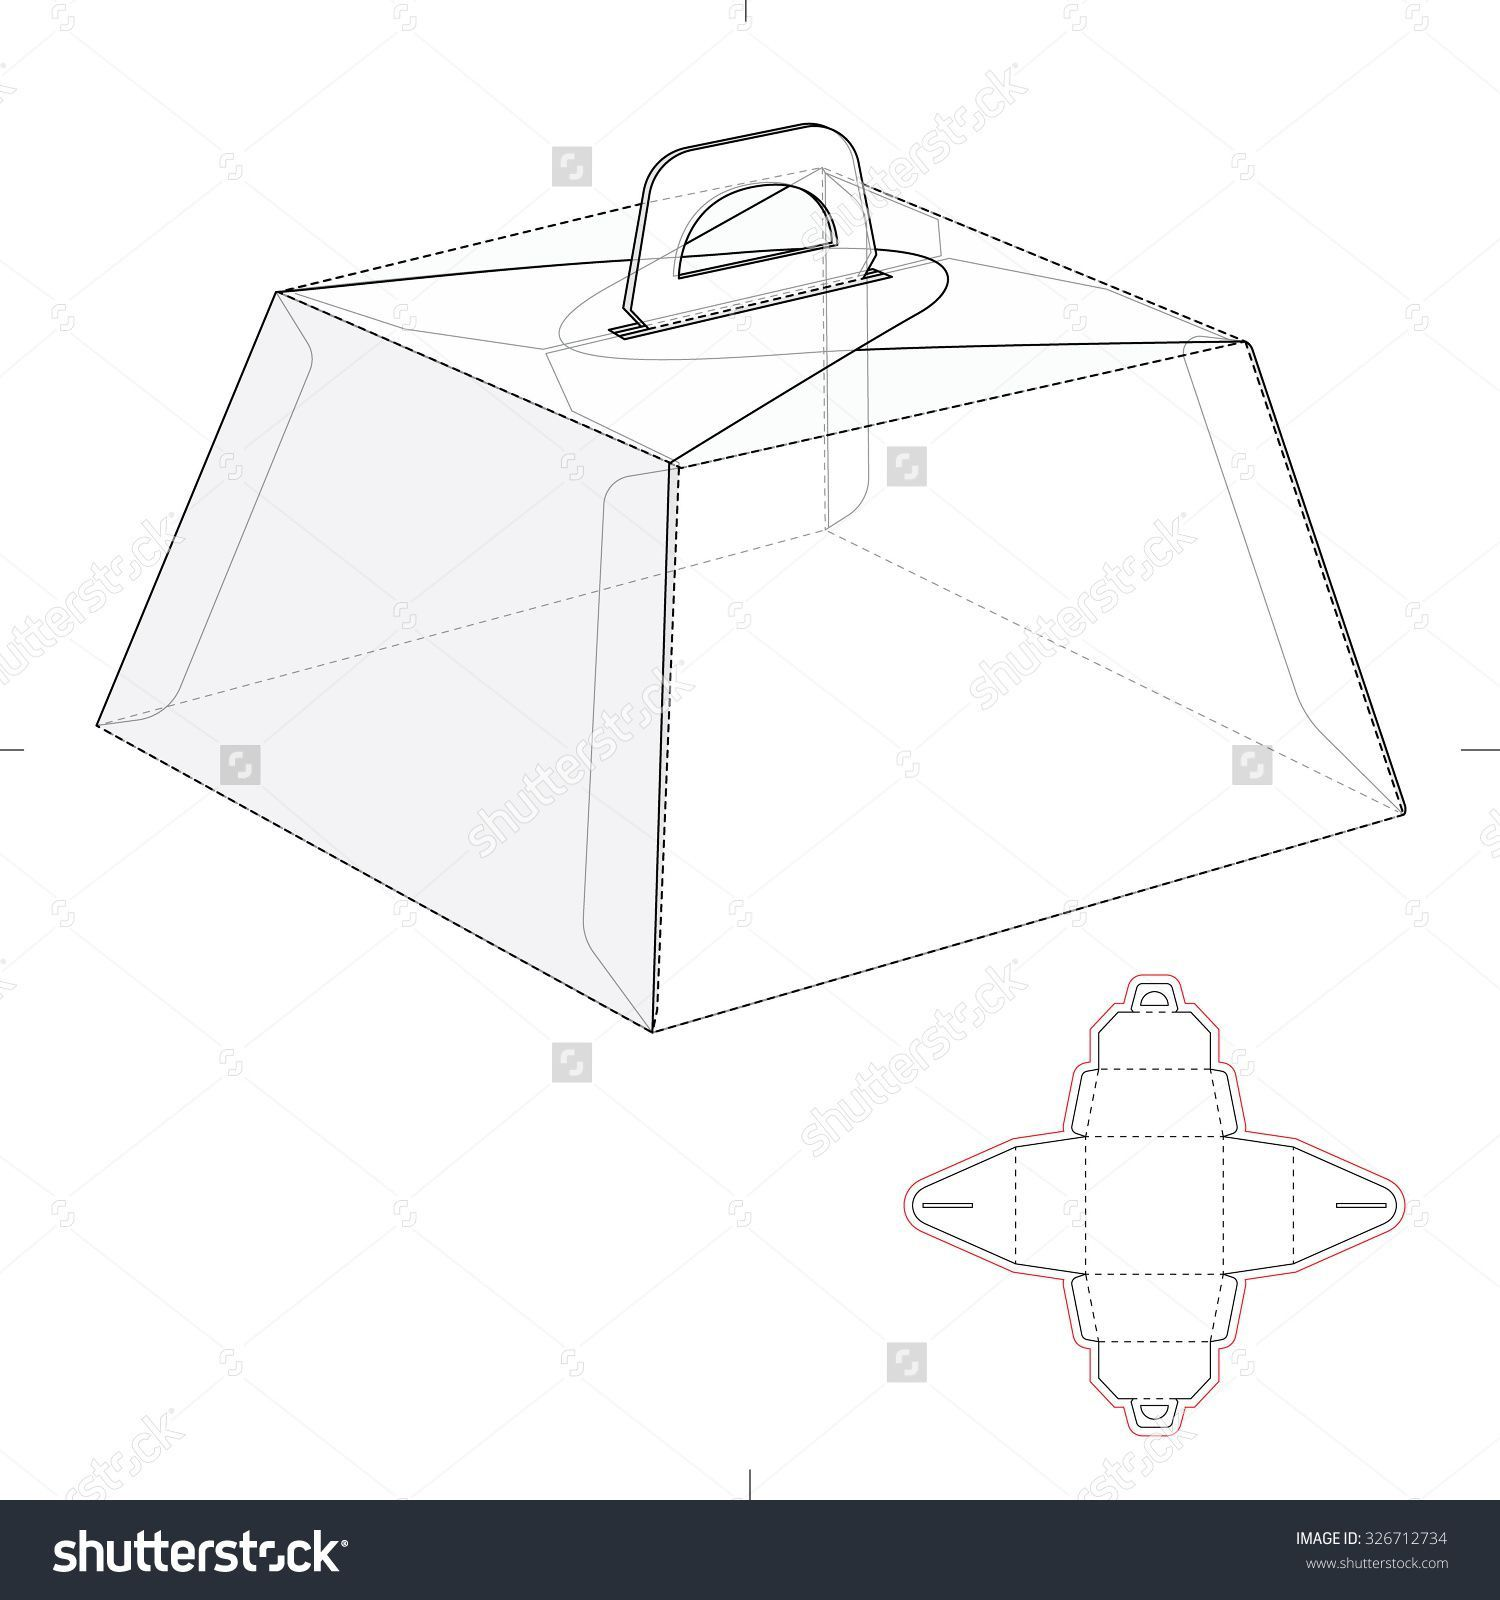 003 Unusual Box Design Template Free Inspiration  Text Download PackagingFull